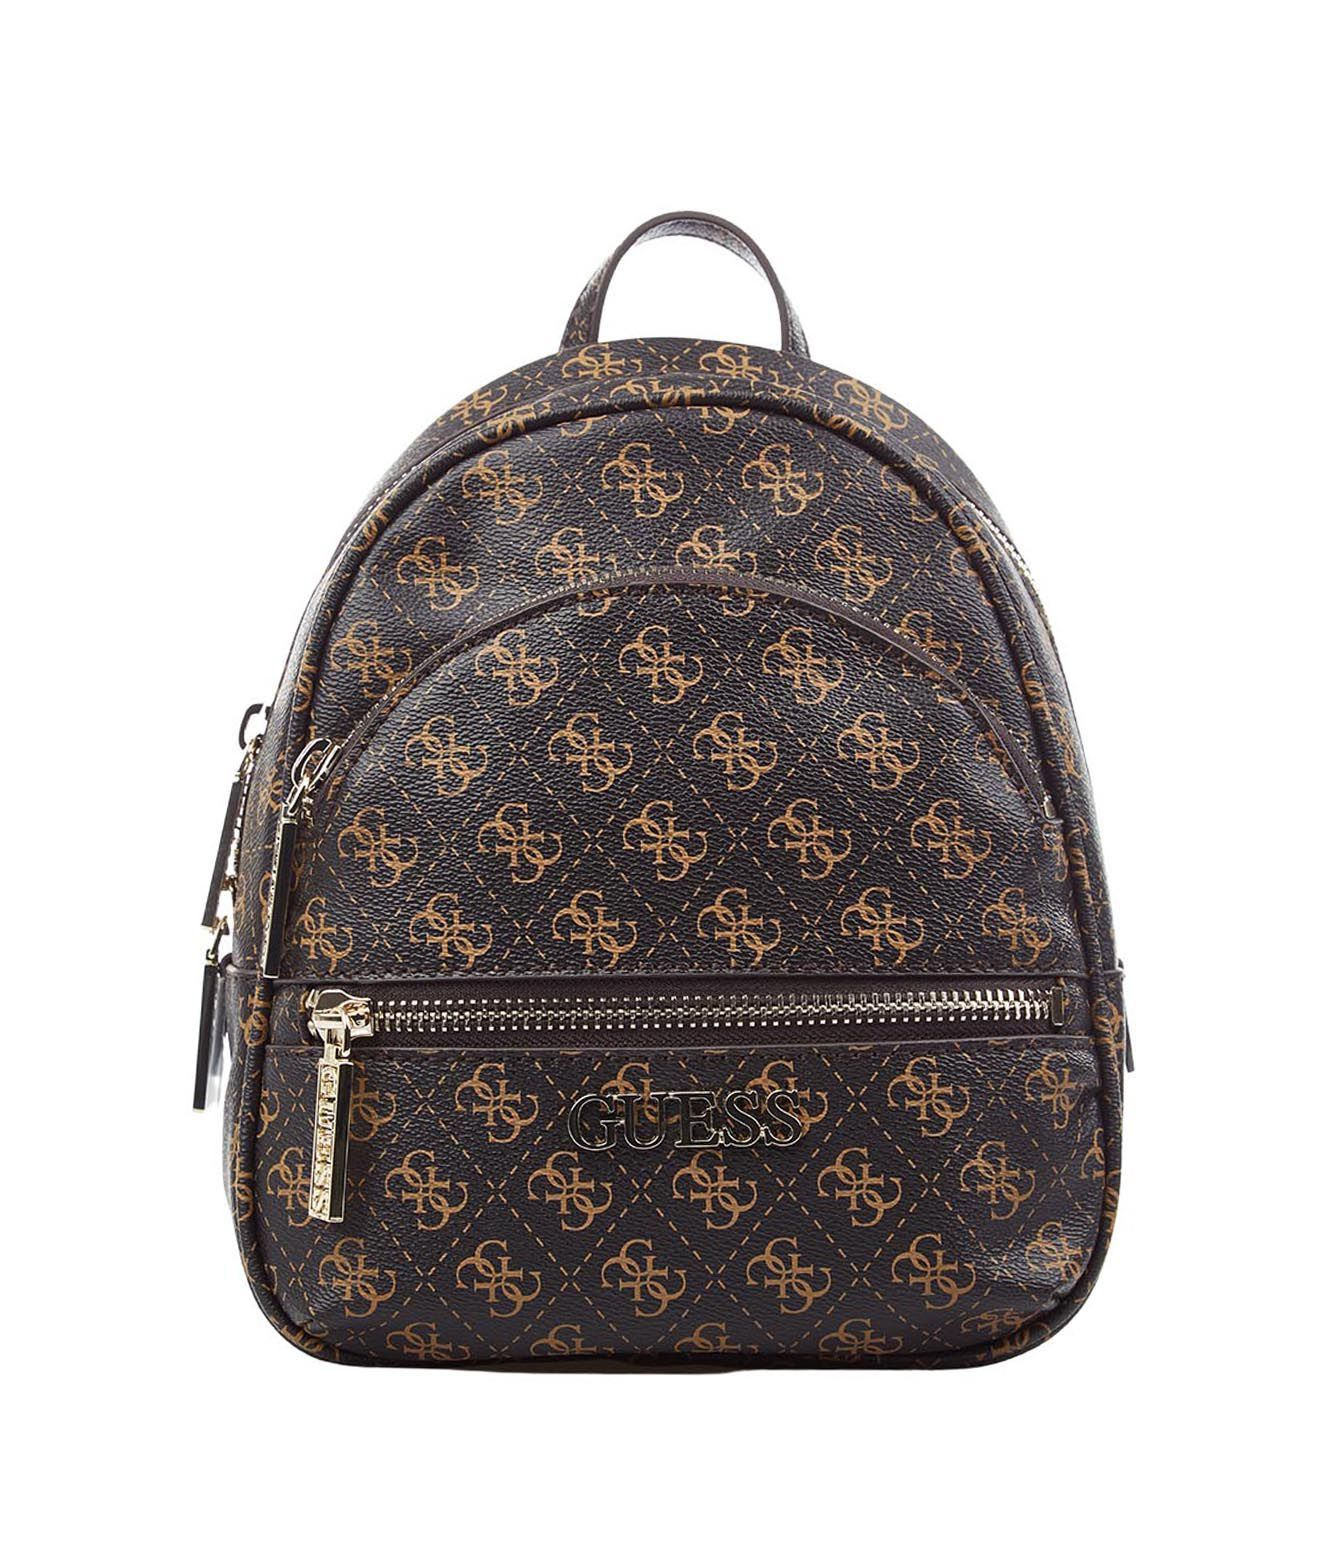 Guess GUESS WOMEN'S HWQL6994310BROWN BROWN POLYURETHANE BACKPACK